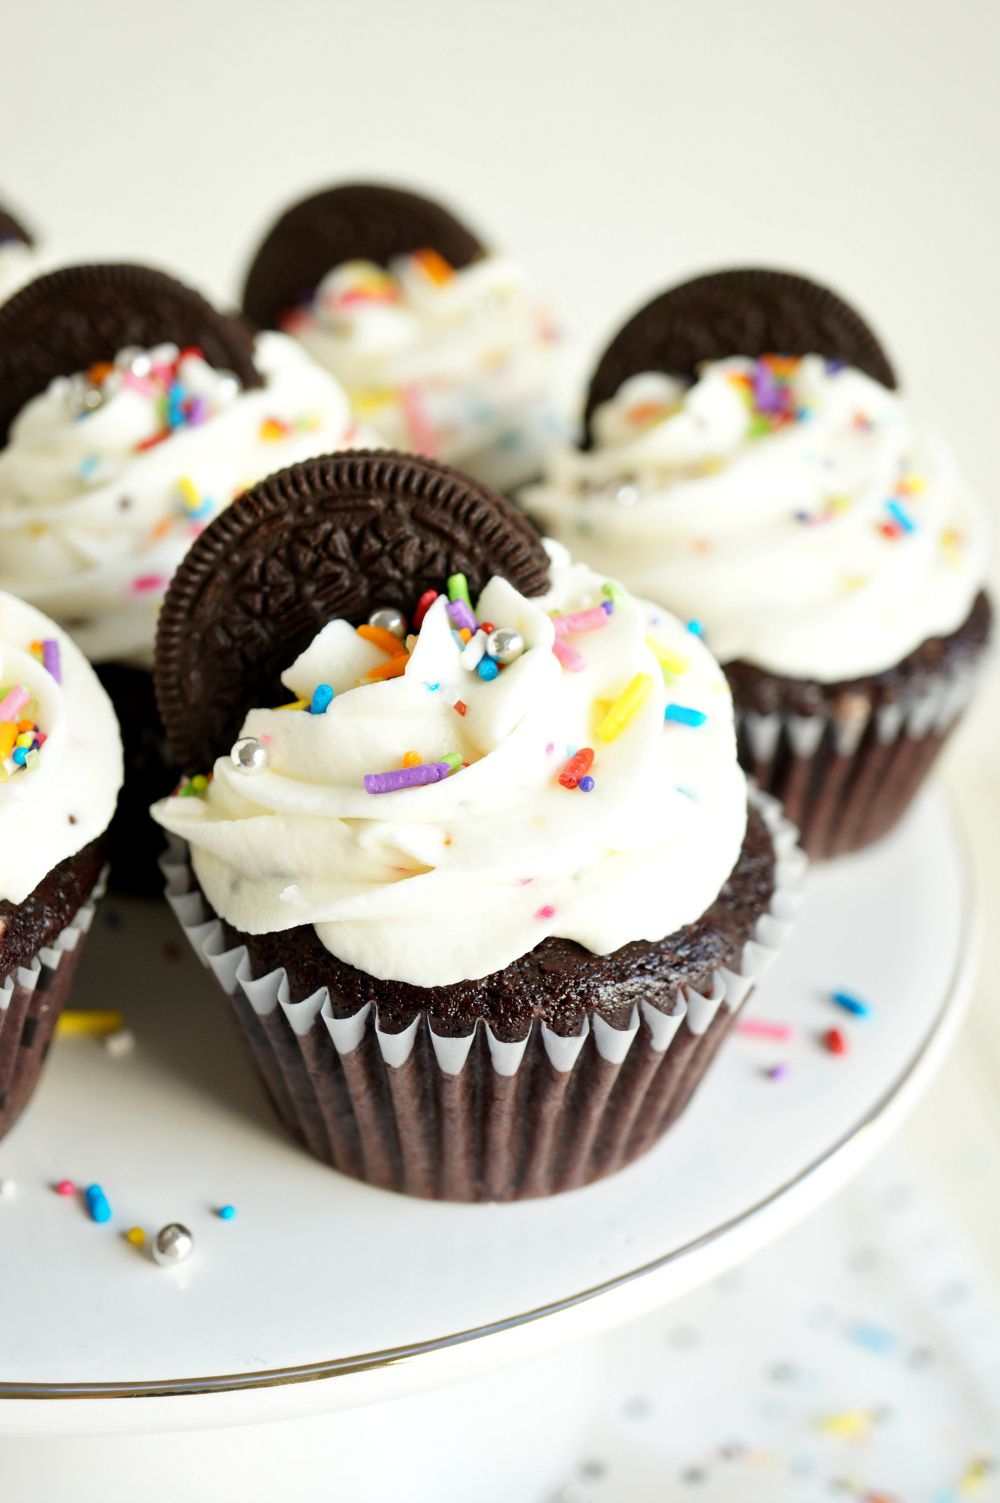 Vegan Birthday Cake Oreo Cupcakes The Baking Fairy Oreo Cake Vegan Birthday Cake Baking